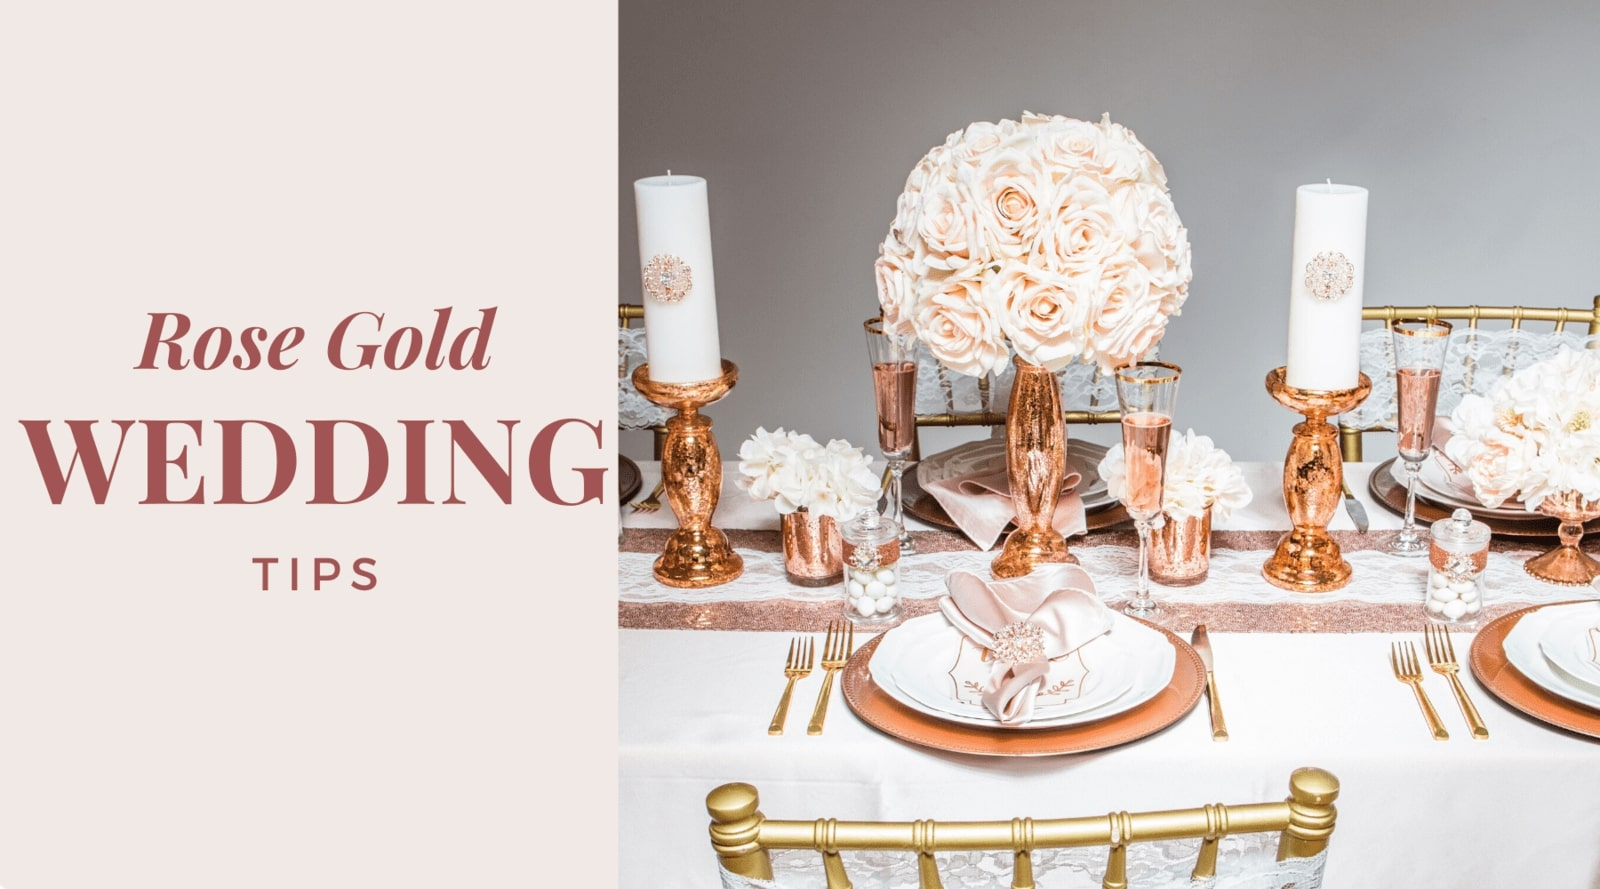 Rose Gold Wedding Decor Tips - Totally Dazzled